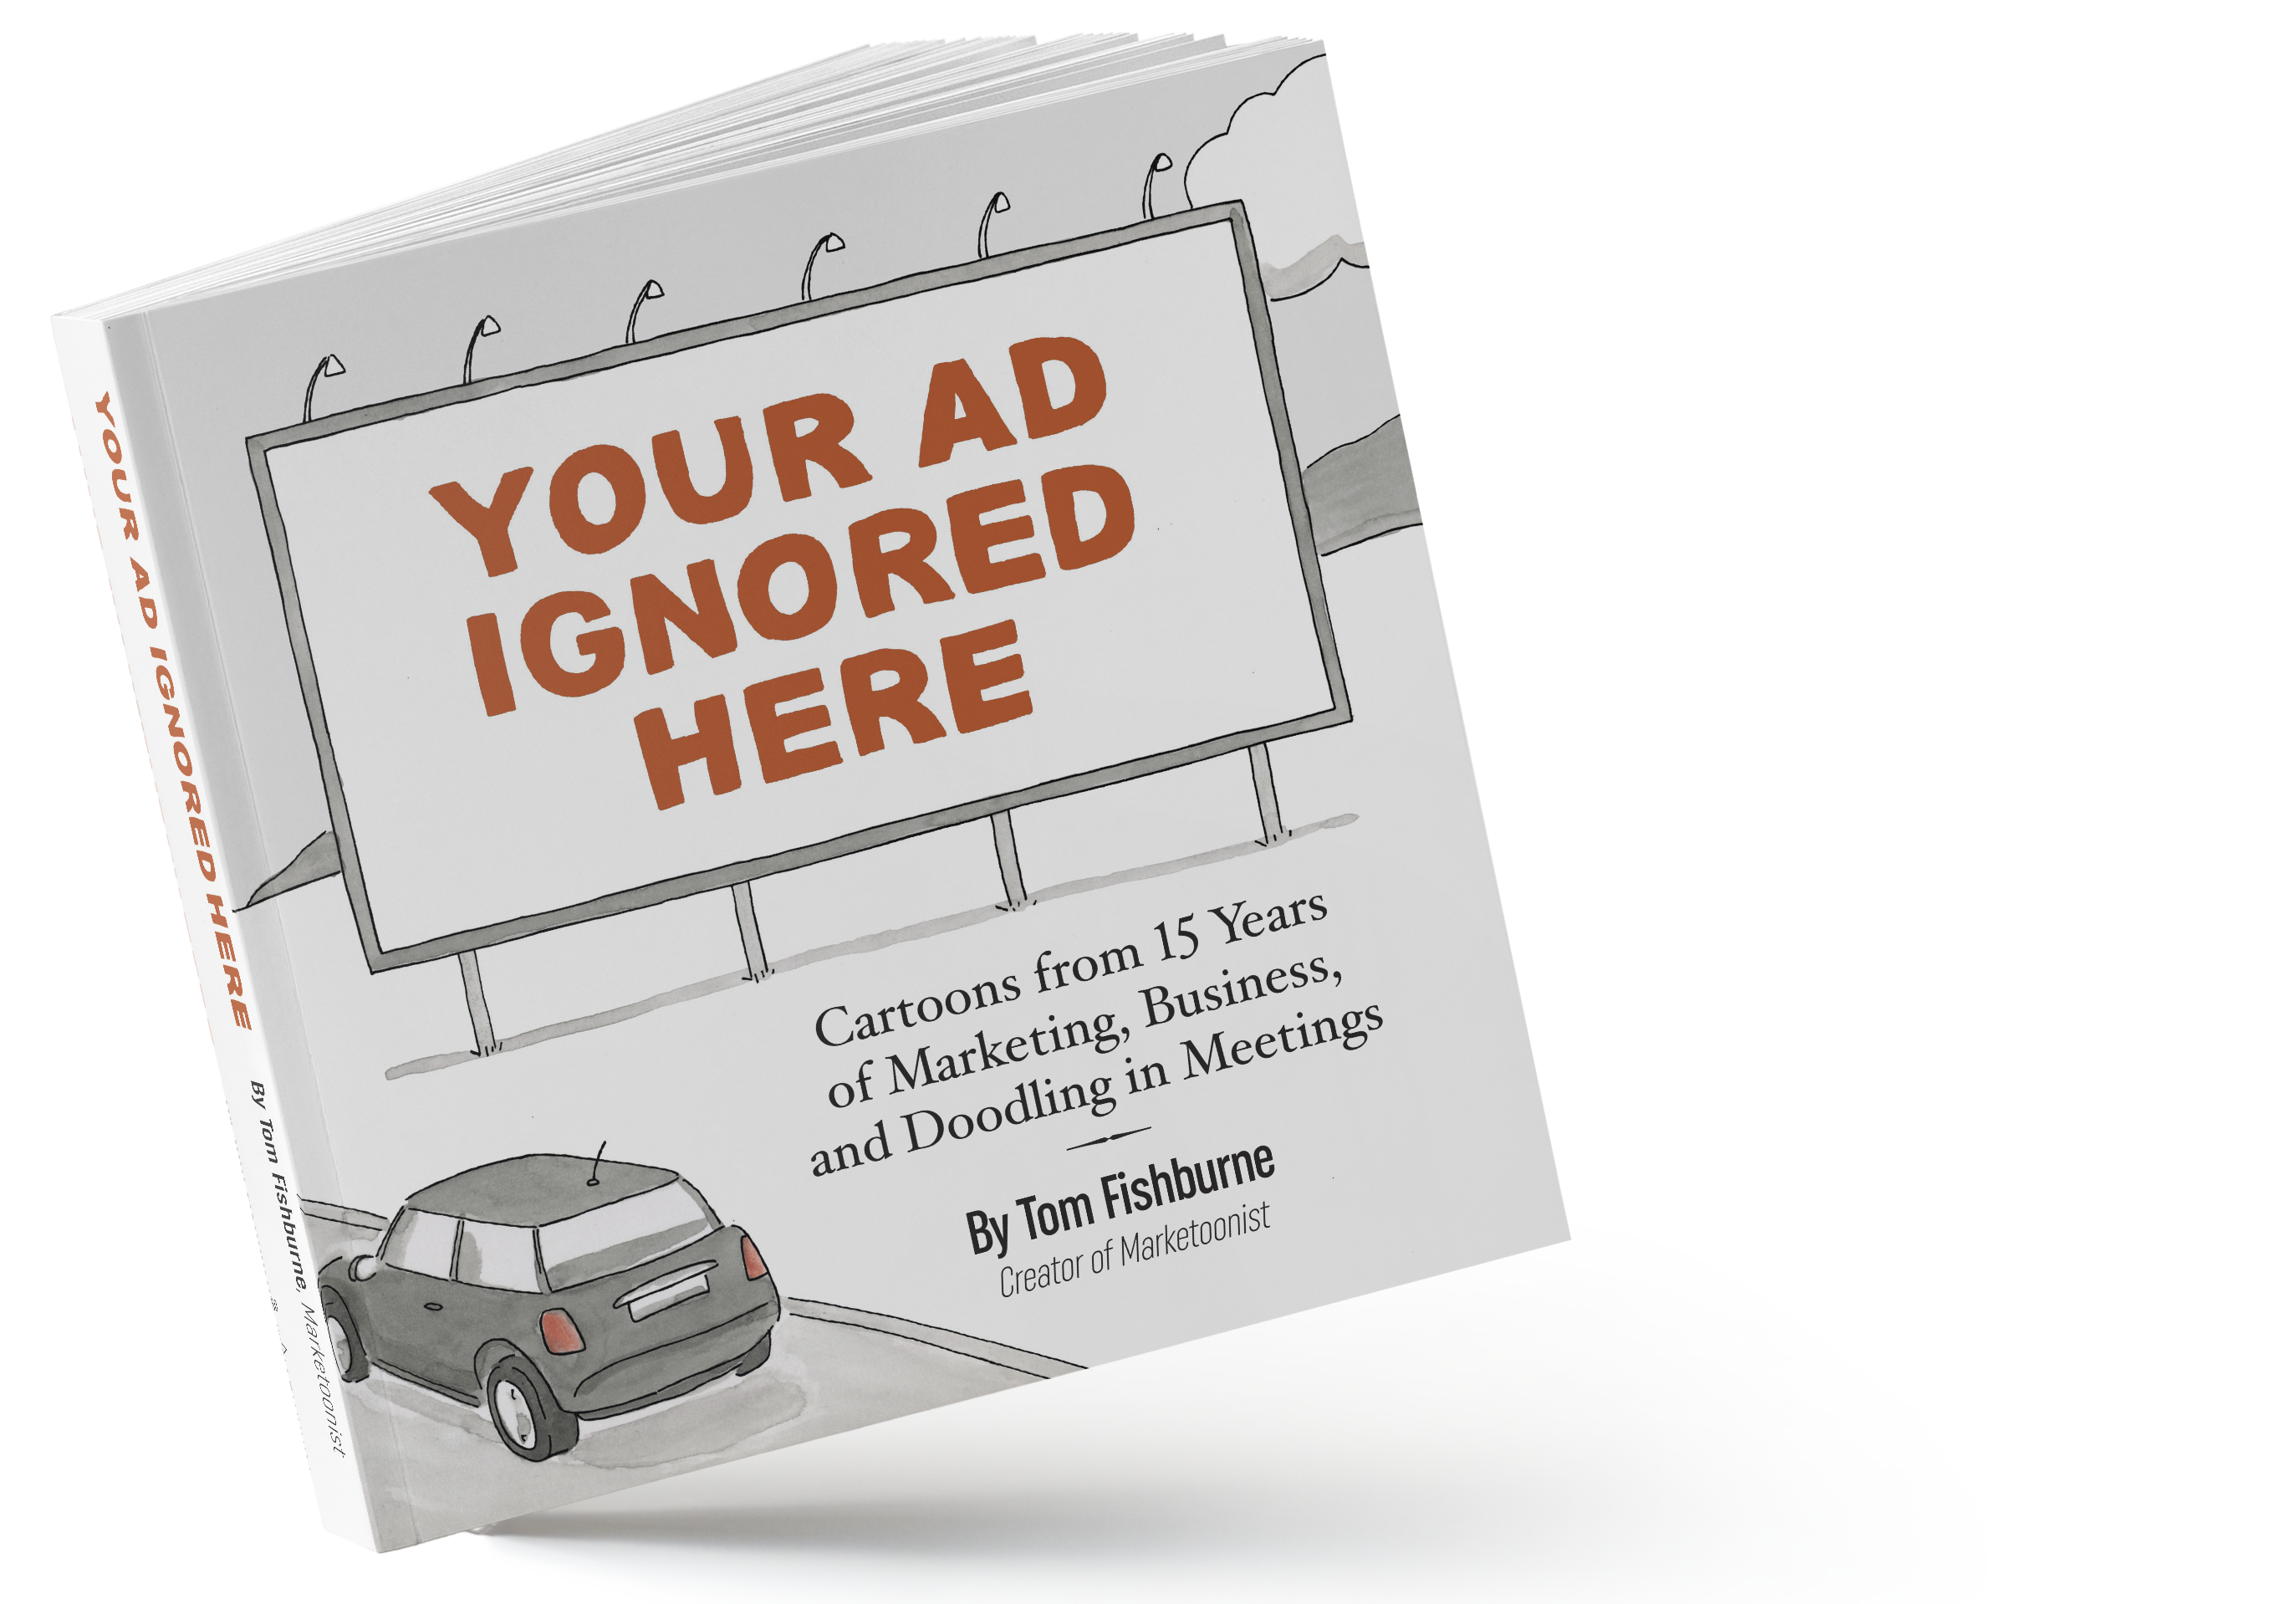 Your Ad Ignored Here Book Image